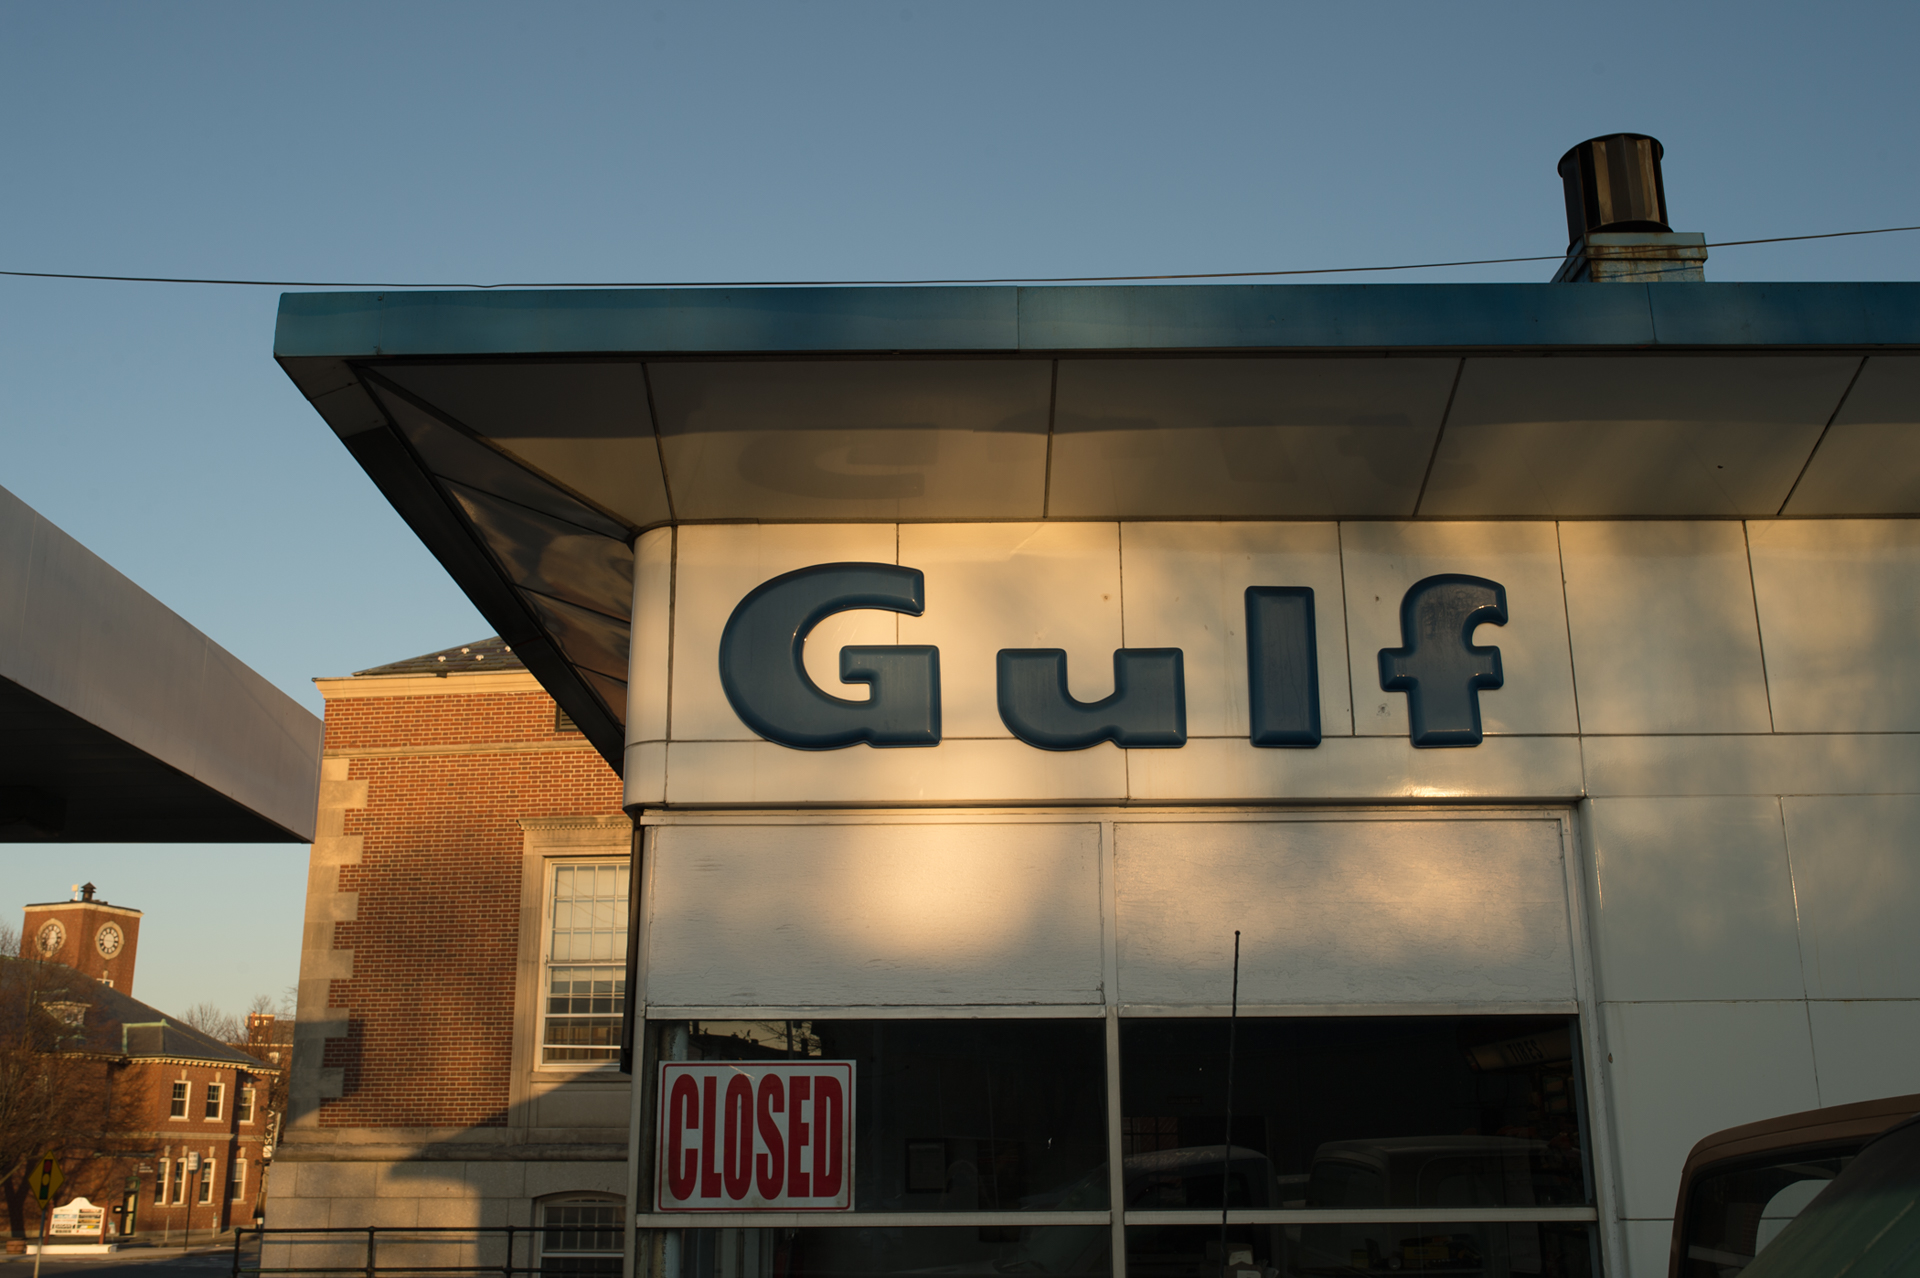 Morning Gulf, Somerville, Massachusetts